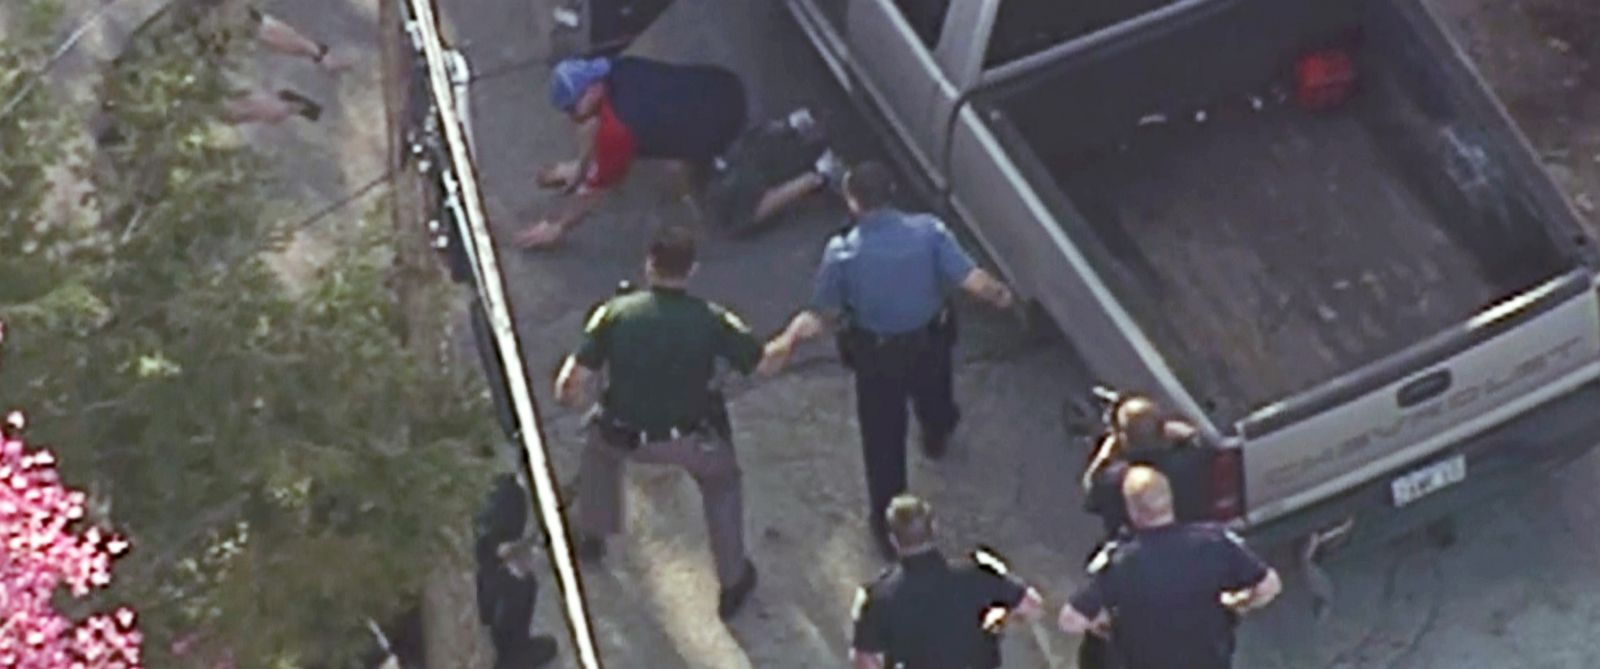 PHOTO: This aerial image made from a helicopter video provided by WHDH shows Richard Simone kneeling and putting his hands on the ground after a high-speed police pursuit in Nashua, N.H., May 11, 2016.